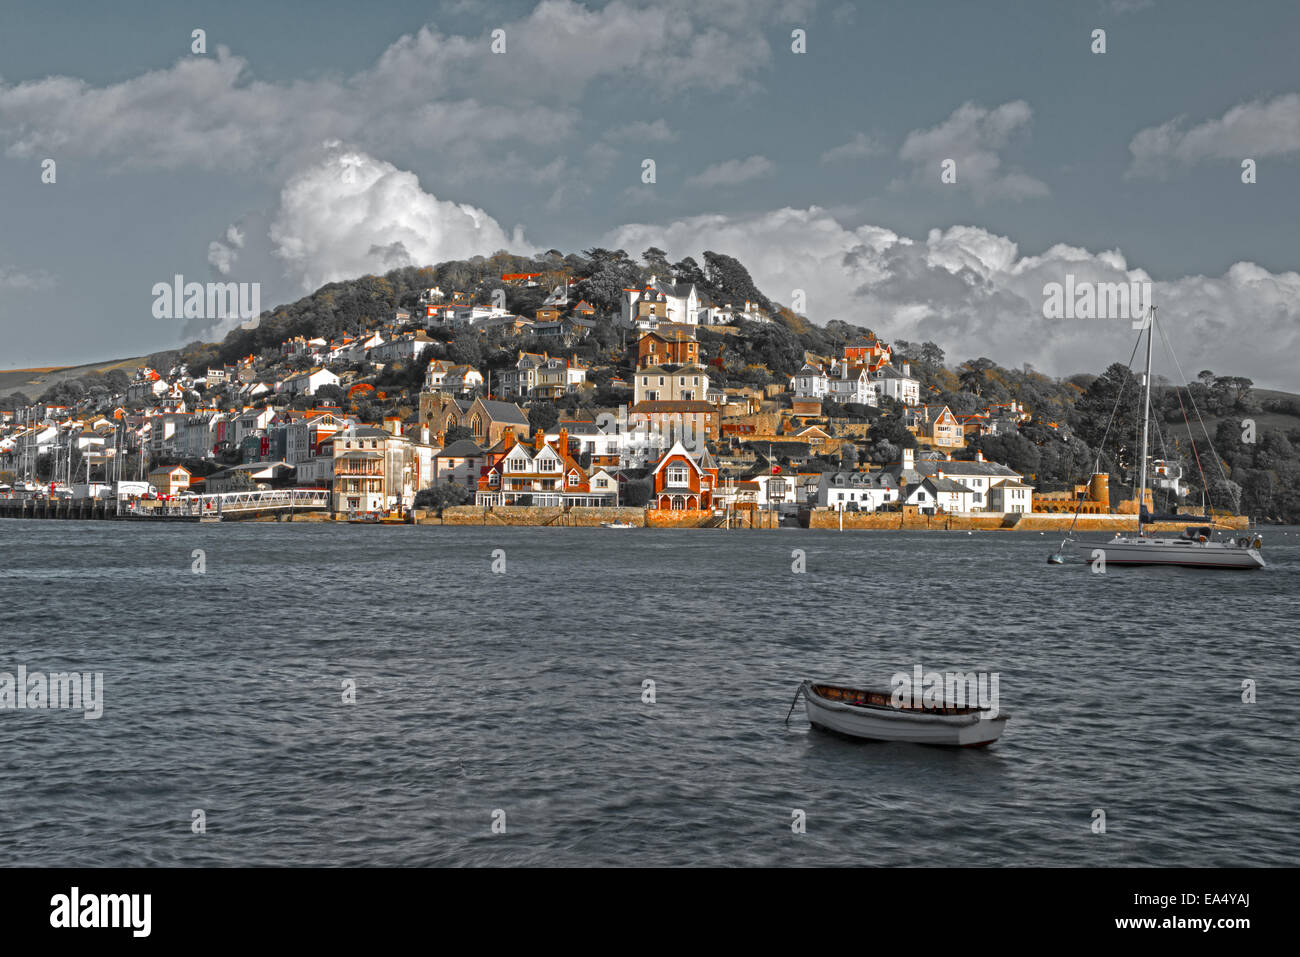 Kingswear et la rivière Dart, South Hams, Devon, Angleterre, Royaume-Uni. Photo Stock